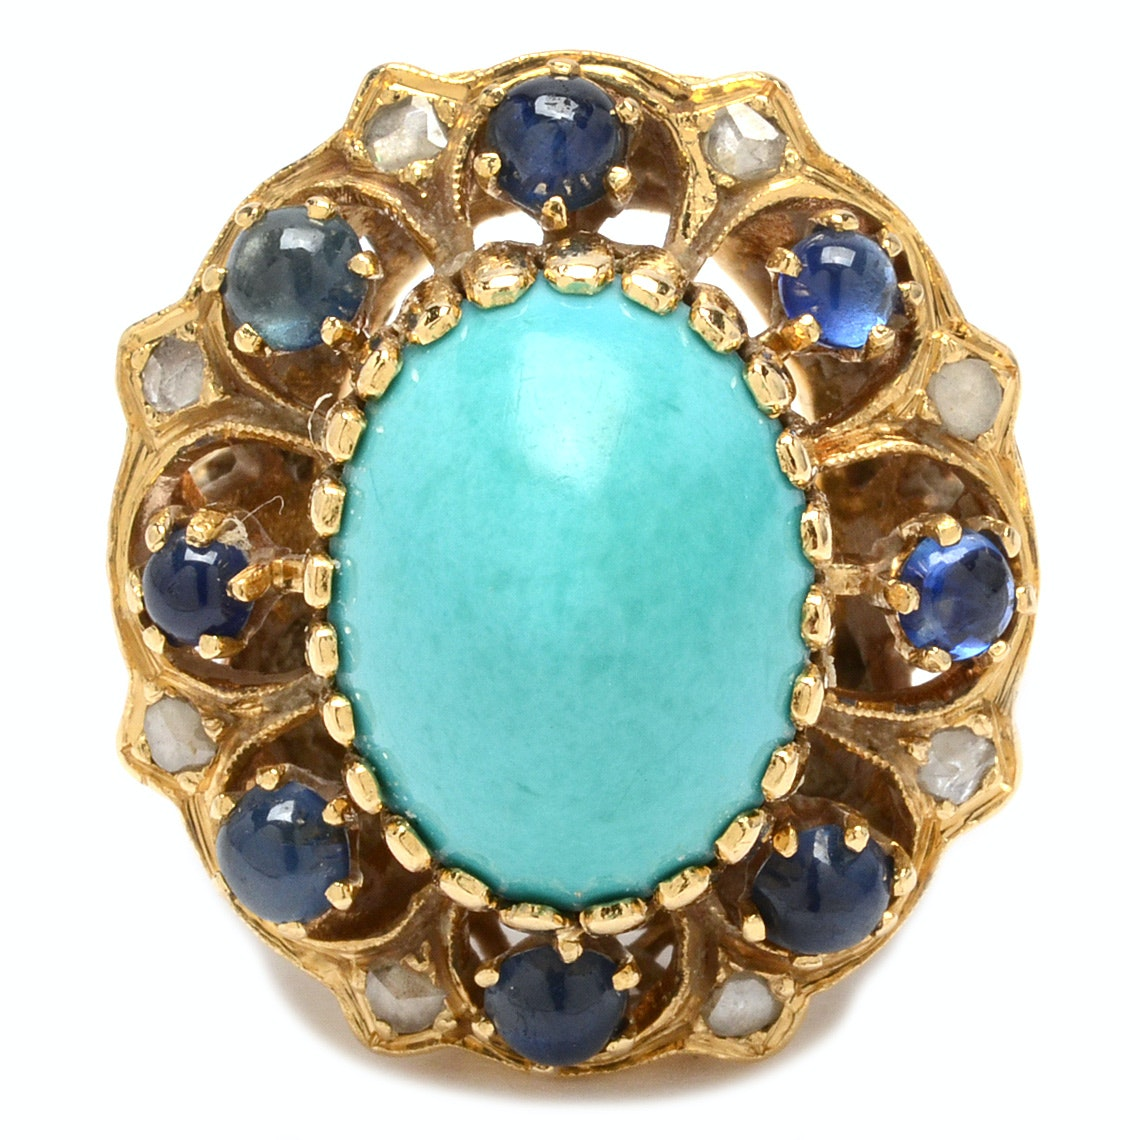 18K Yellow Gold Turquoise Ring with Diamonds and Sapphires